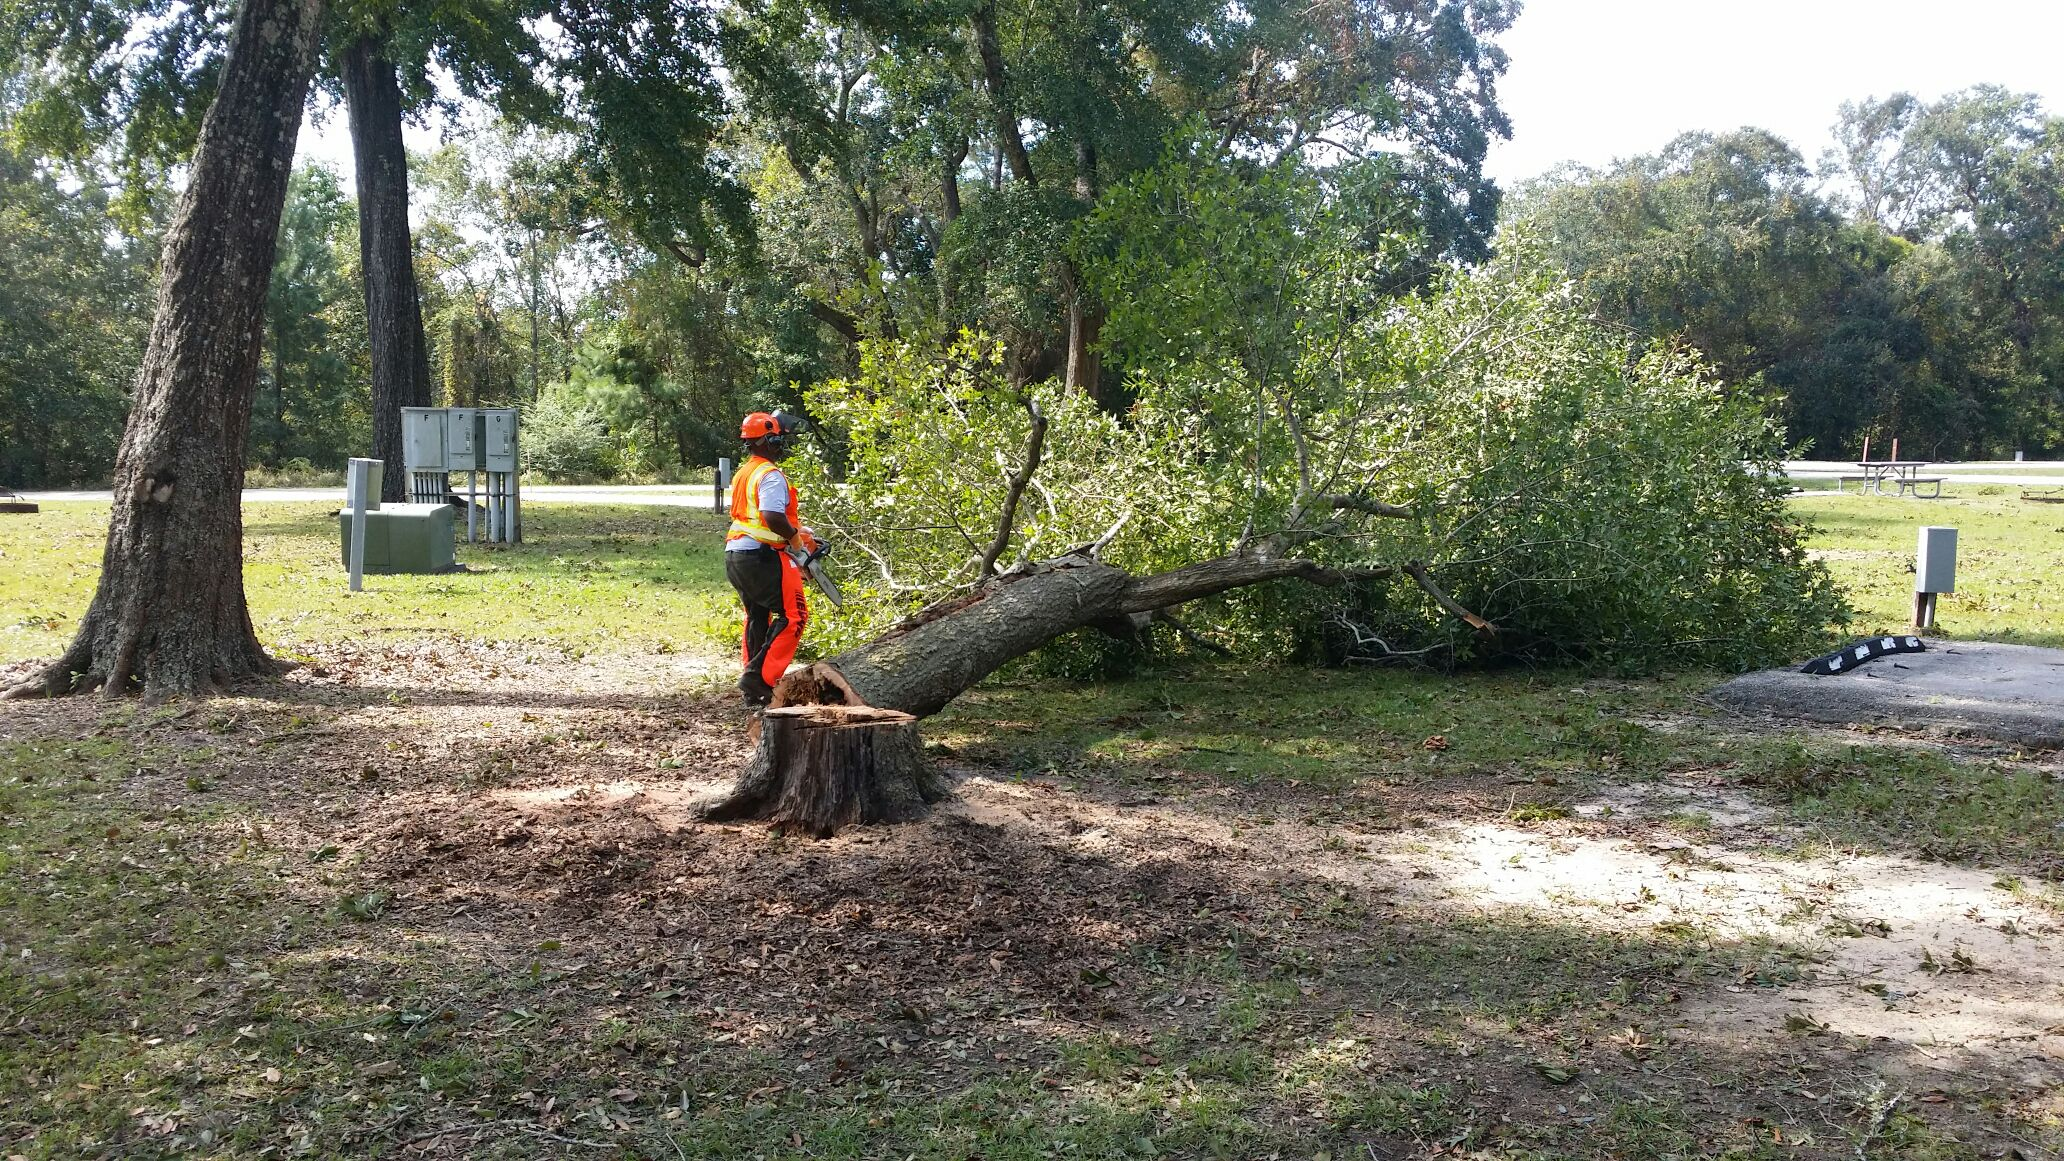 A park employee inspects a downed tree before using a chainsaw to cut it up.